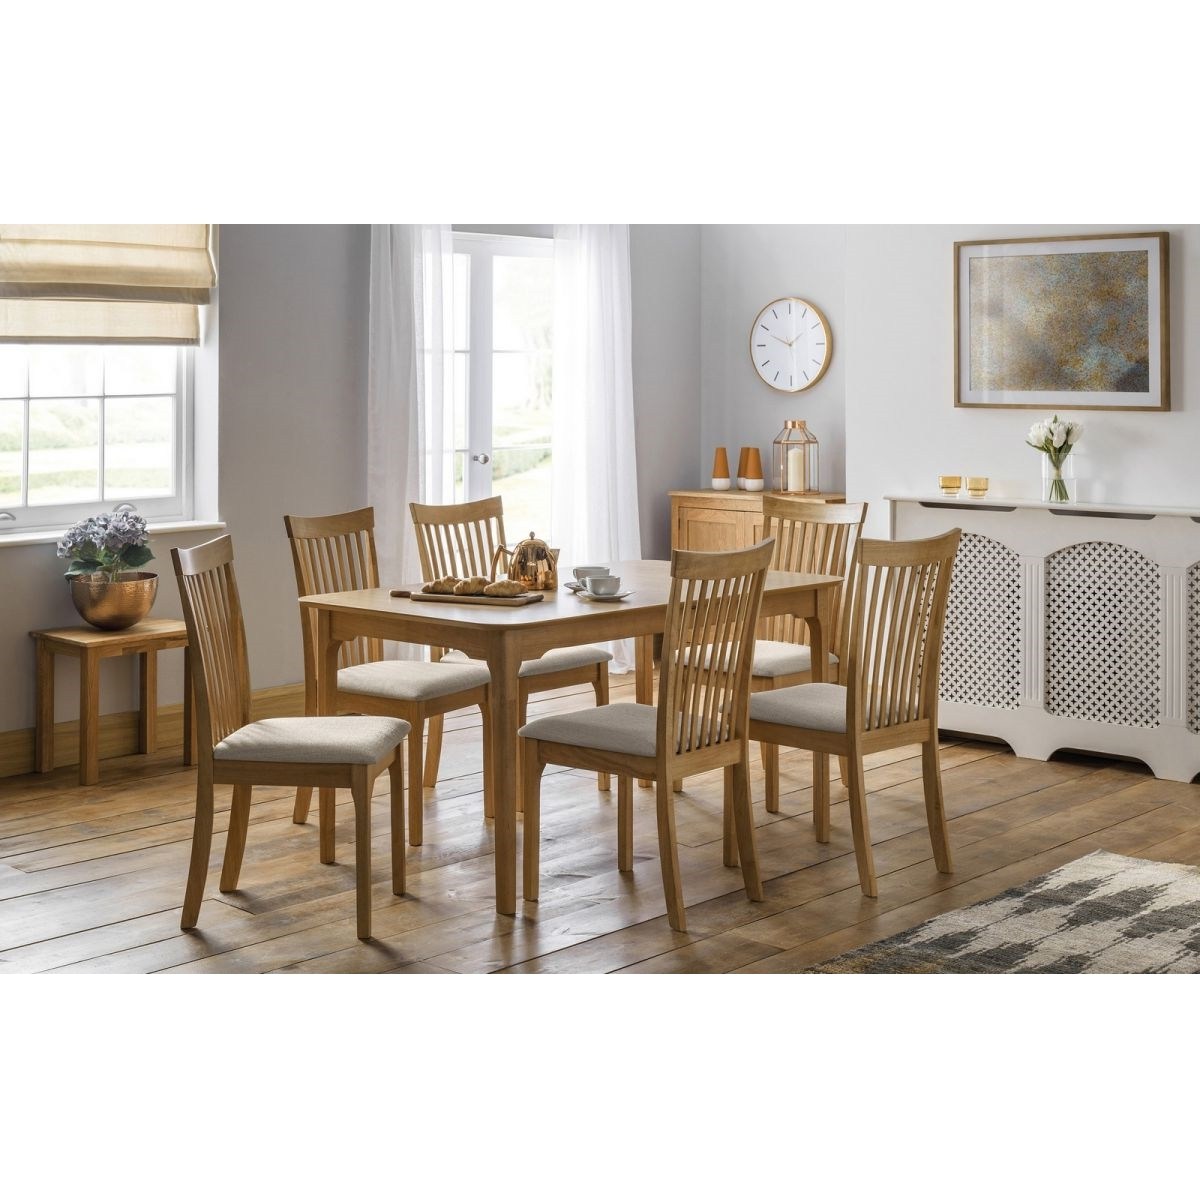 Widely Used Oak Dining Tables With 6 Chairs Regarding Naples Extending Oak Dining Table Set With 6 Chairs – Furnicomp (View 24 of 25)